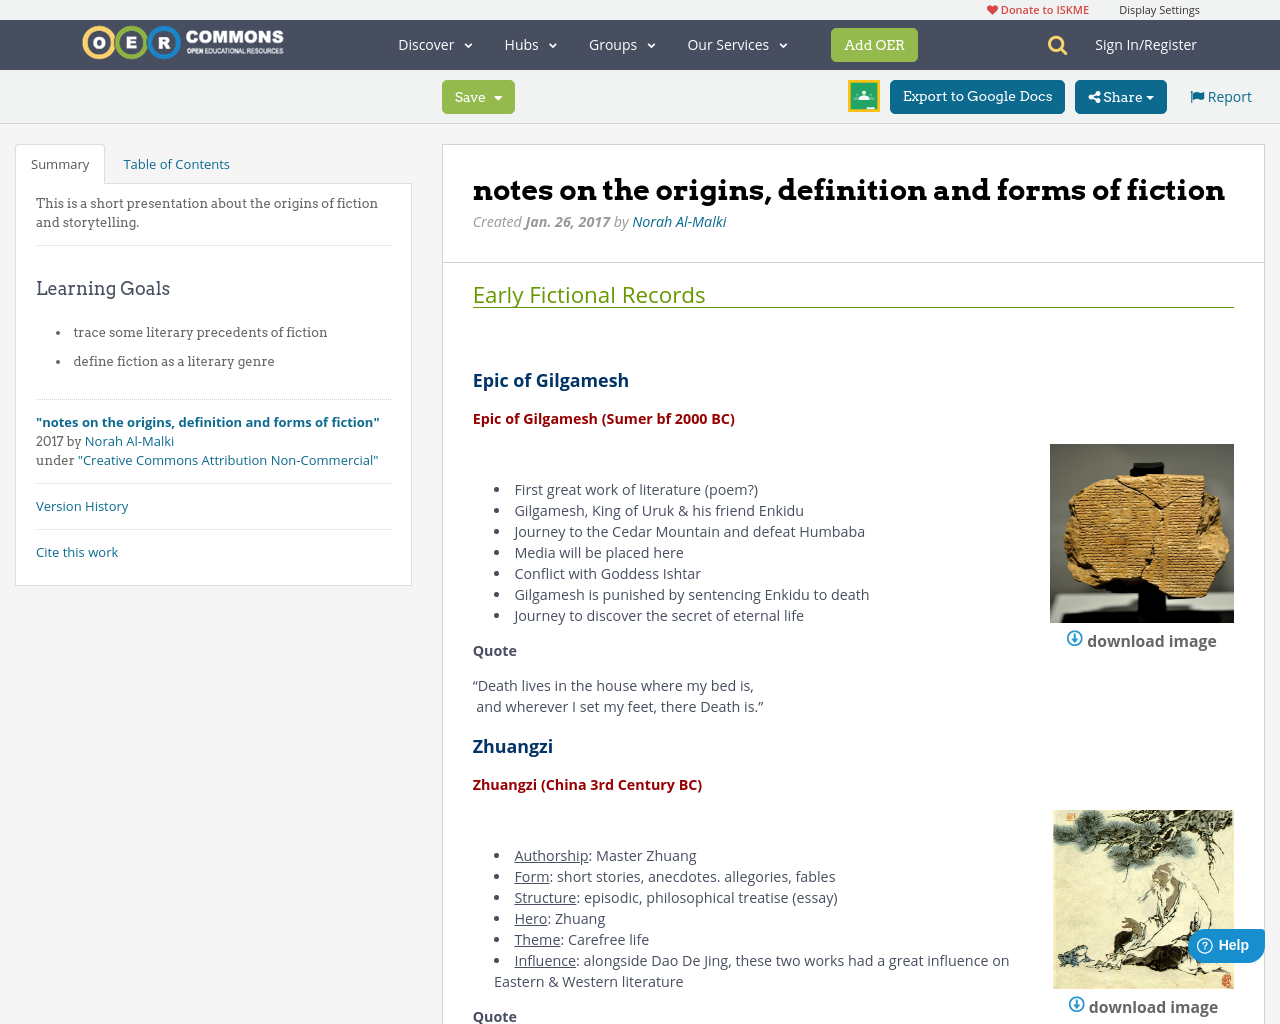 epic of gilgamesh essay notes on the origins definition and forms  notes on the origins definition and forms of fiction oer commons